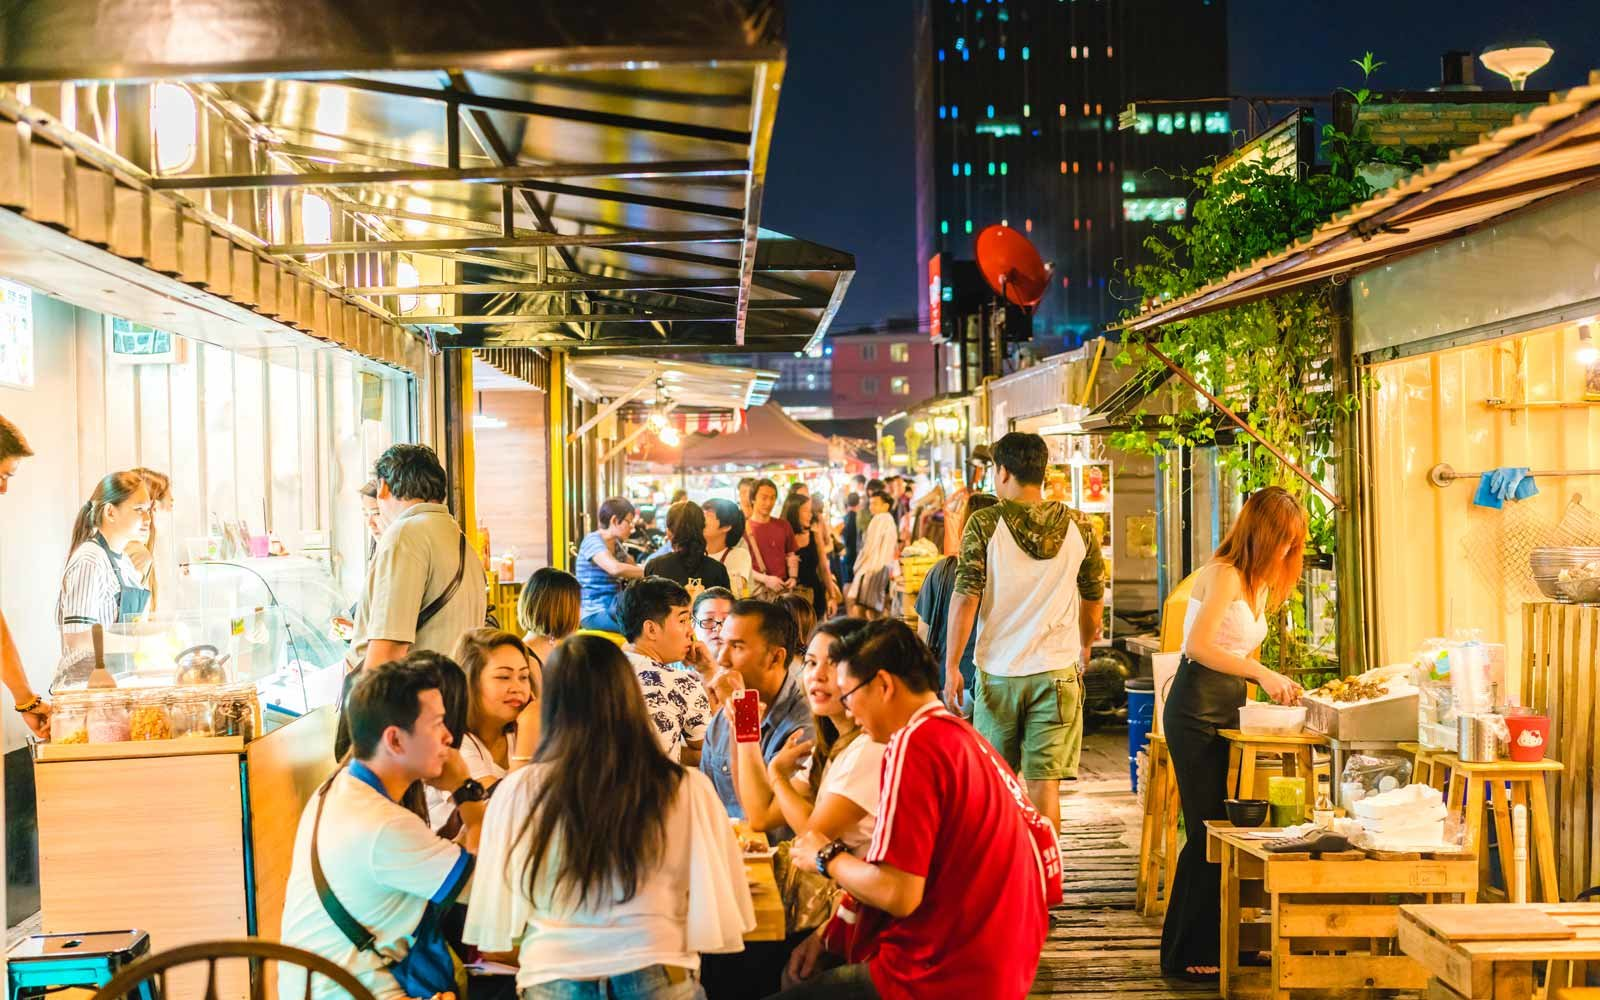 Night Market, Bangkok, Thailand